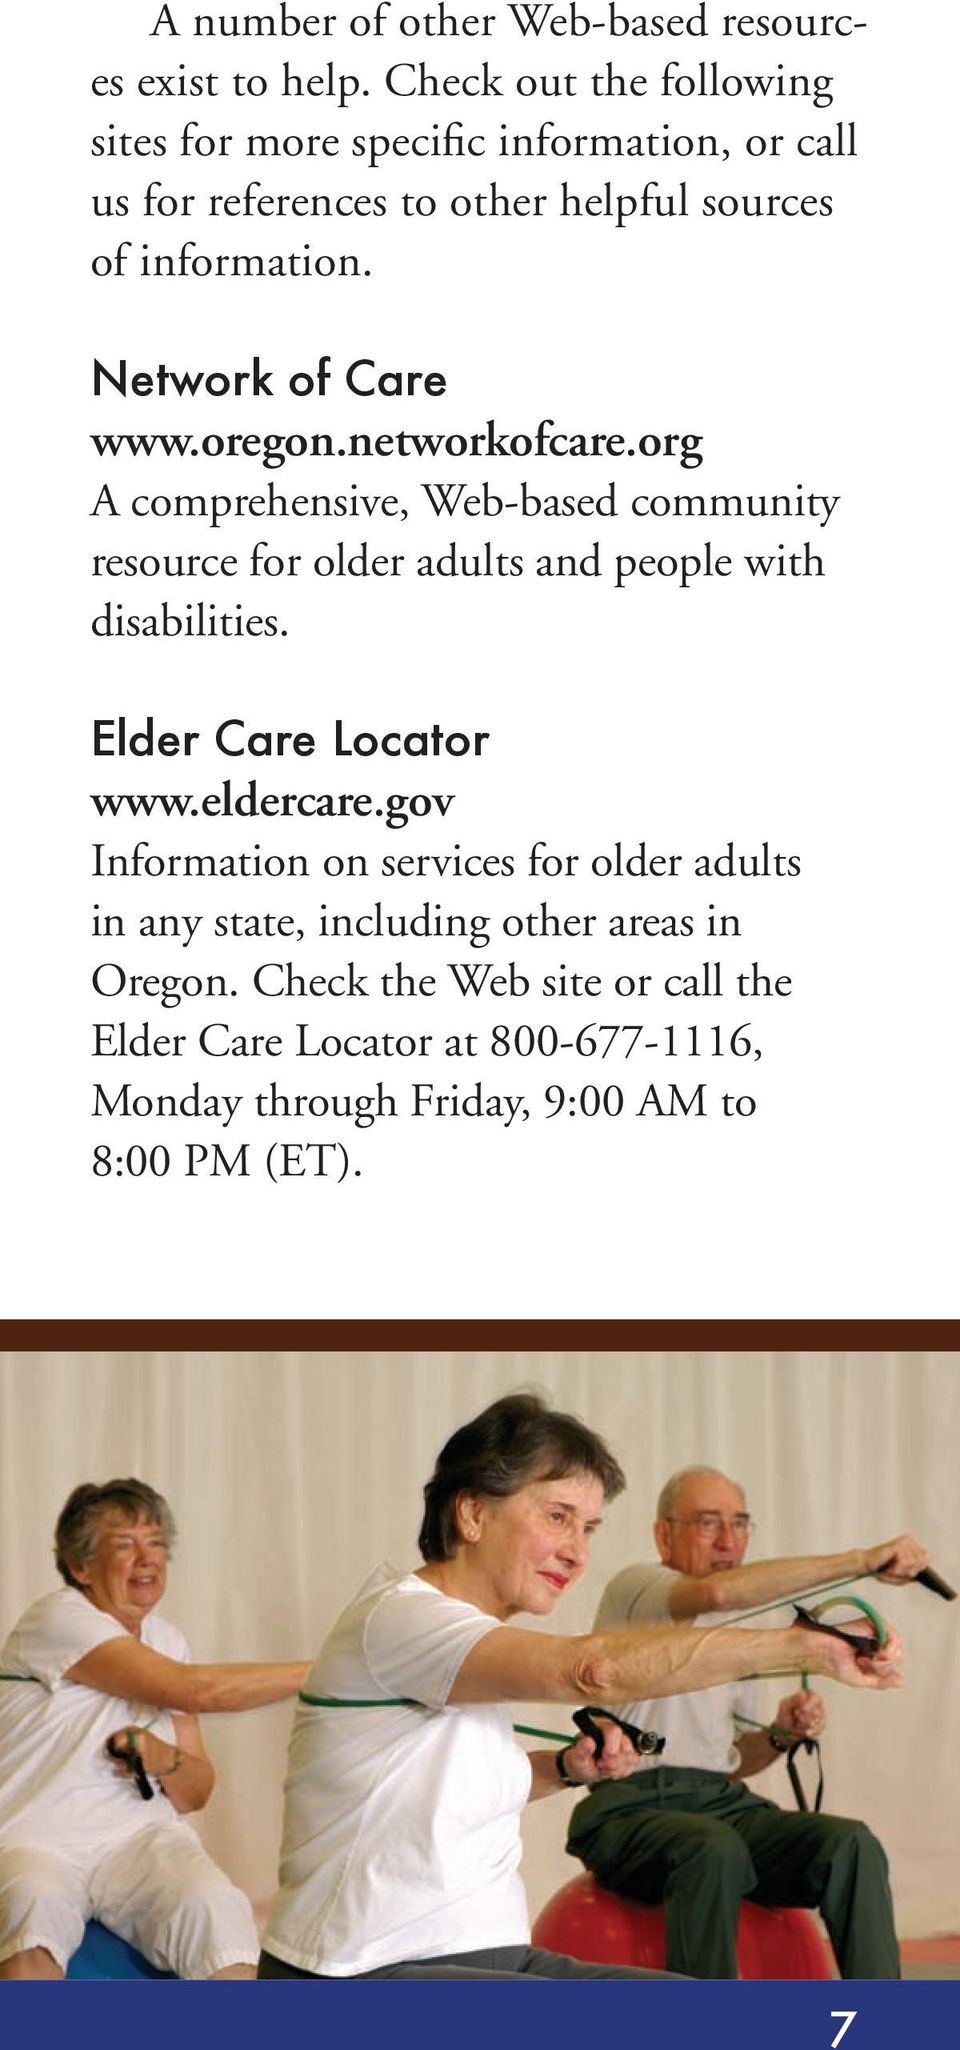 Network of Care www.oregon.networkofcare.org A comprehensive, Web-based community resource for older adults and people with disabilities.